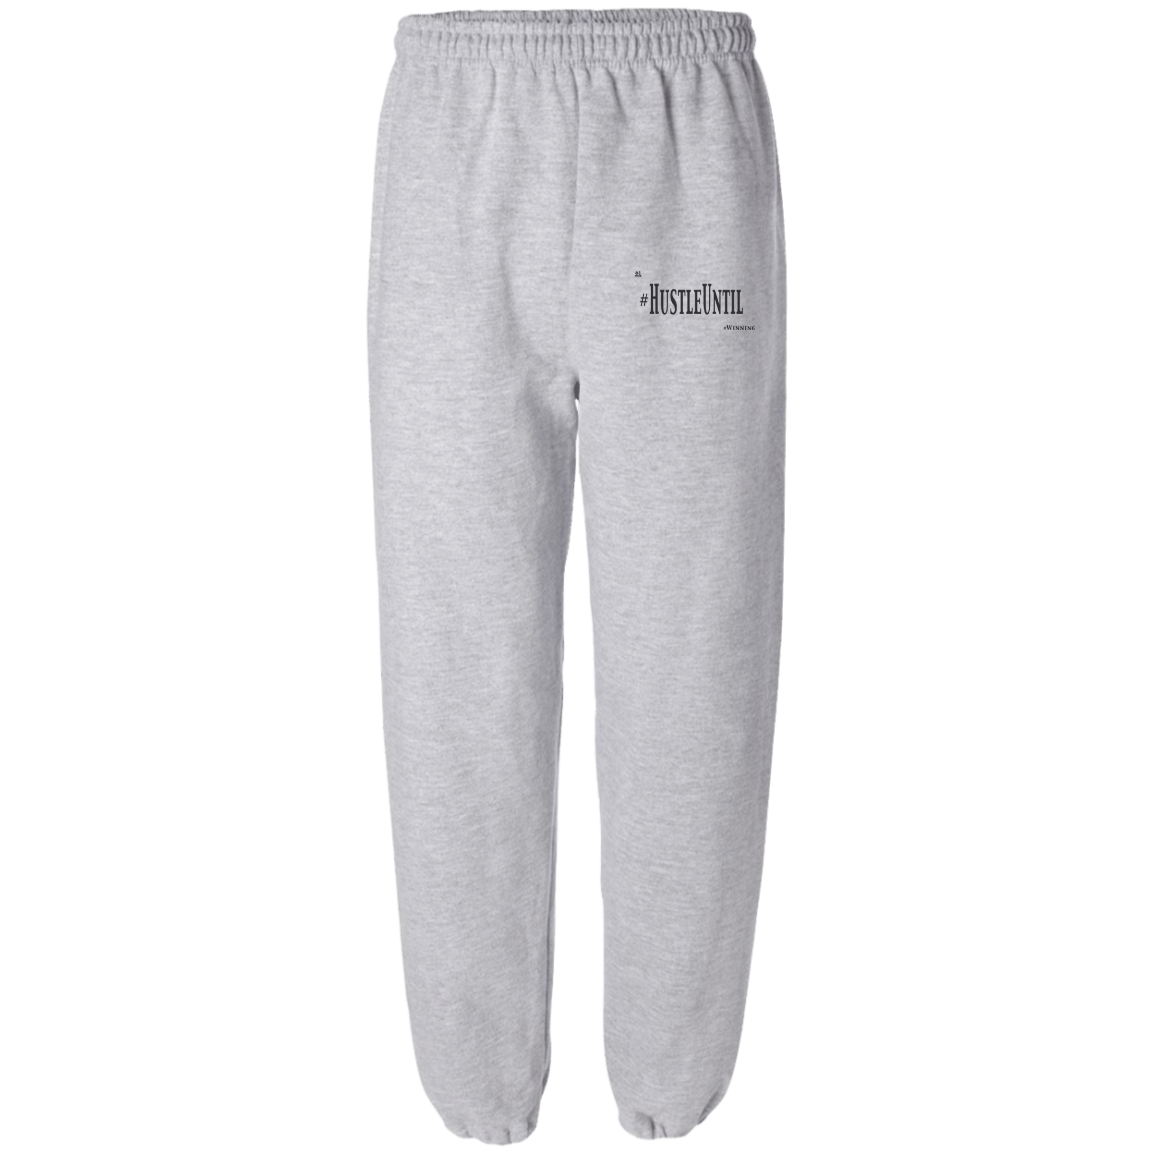 Hustle Until - Gildan Fleece Sweatpant without Pockets